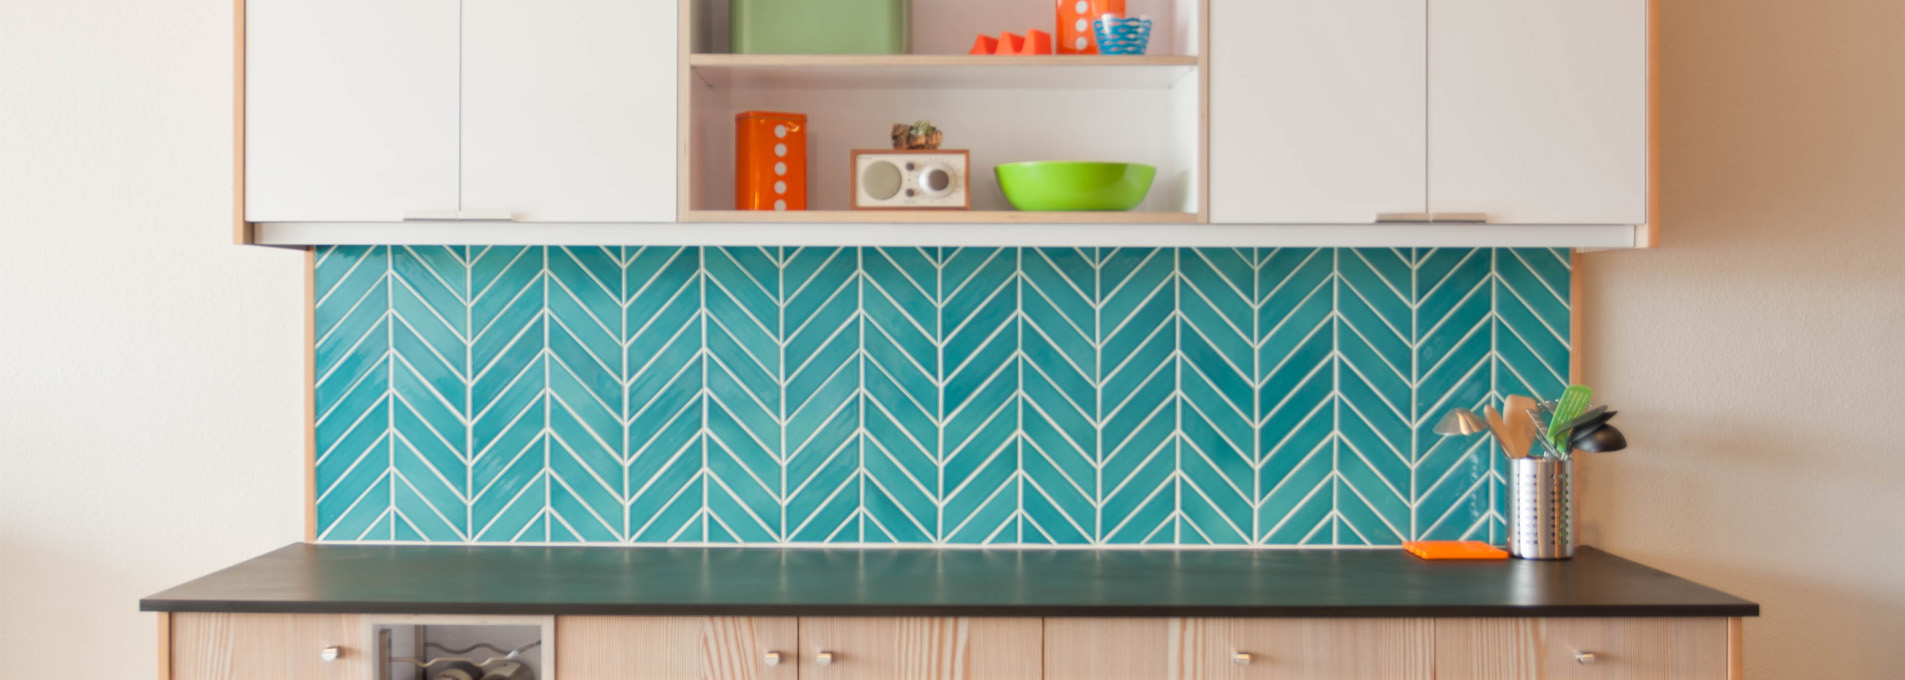 Chevron Tile Colors Banner Image